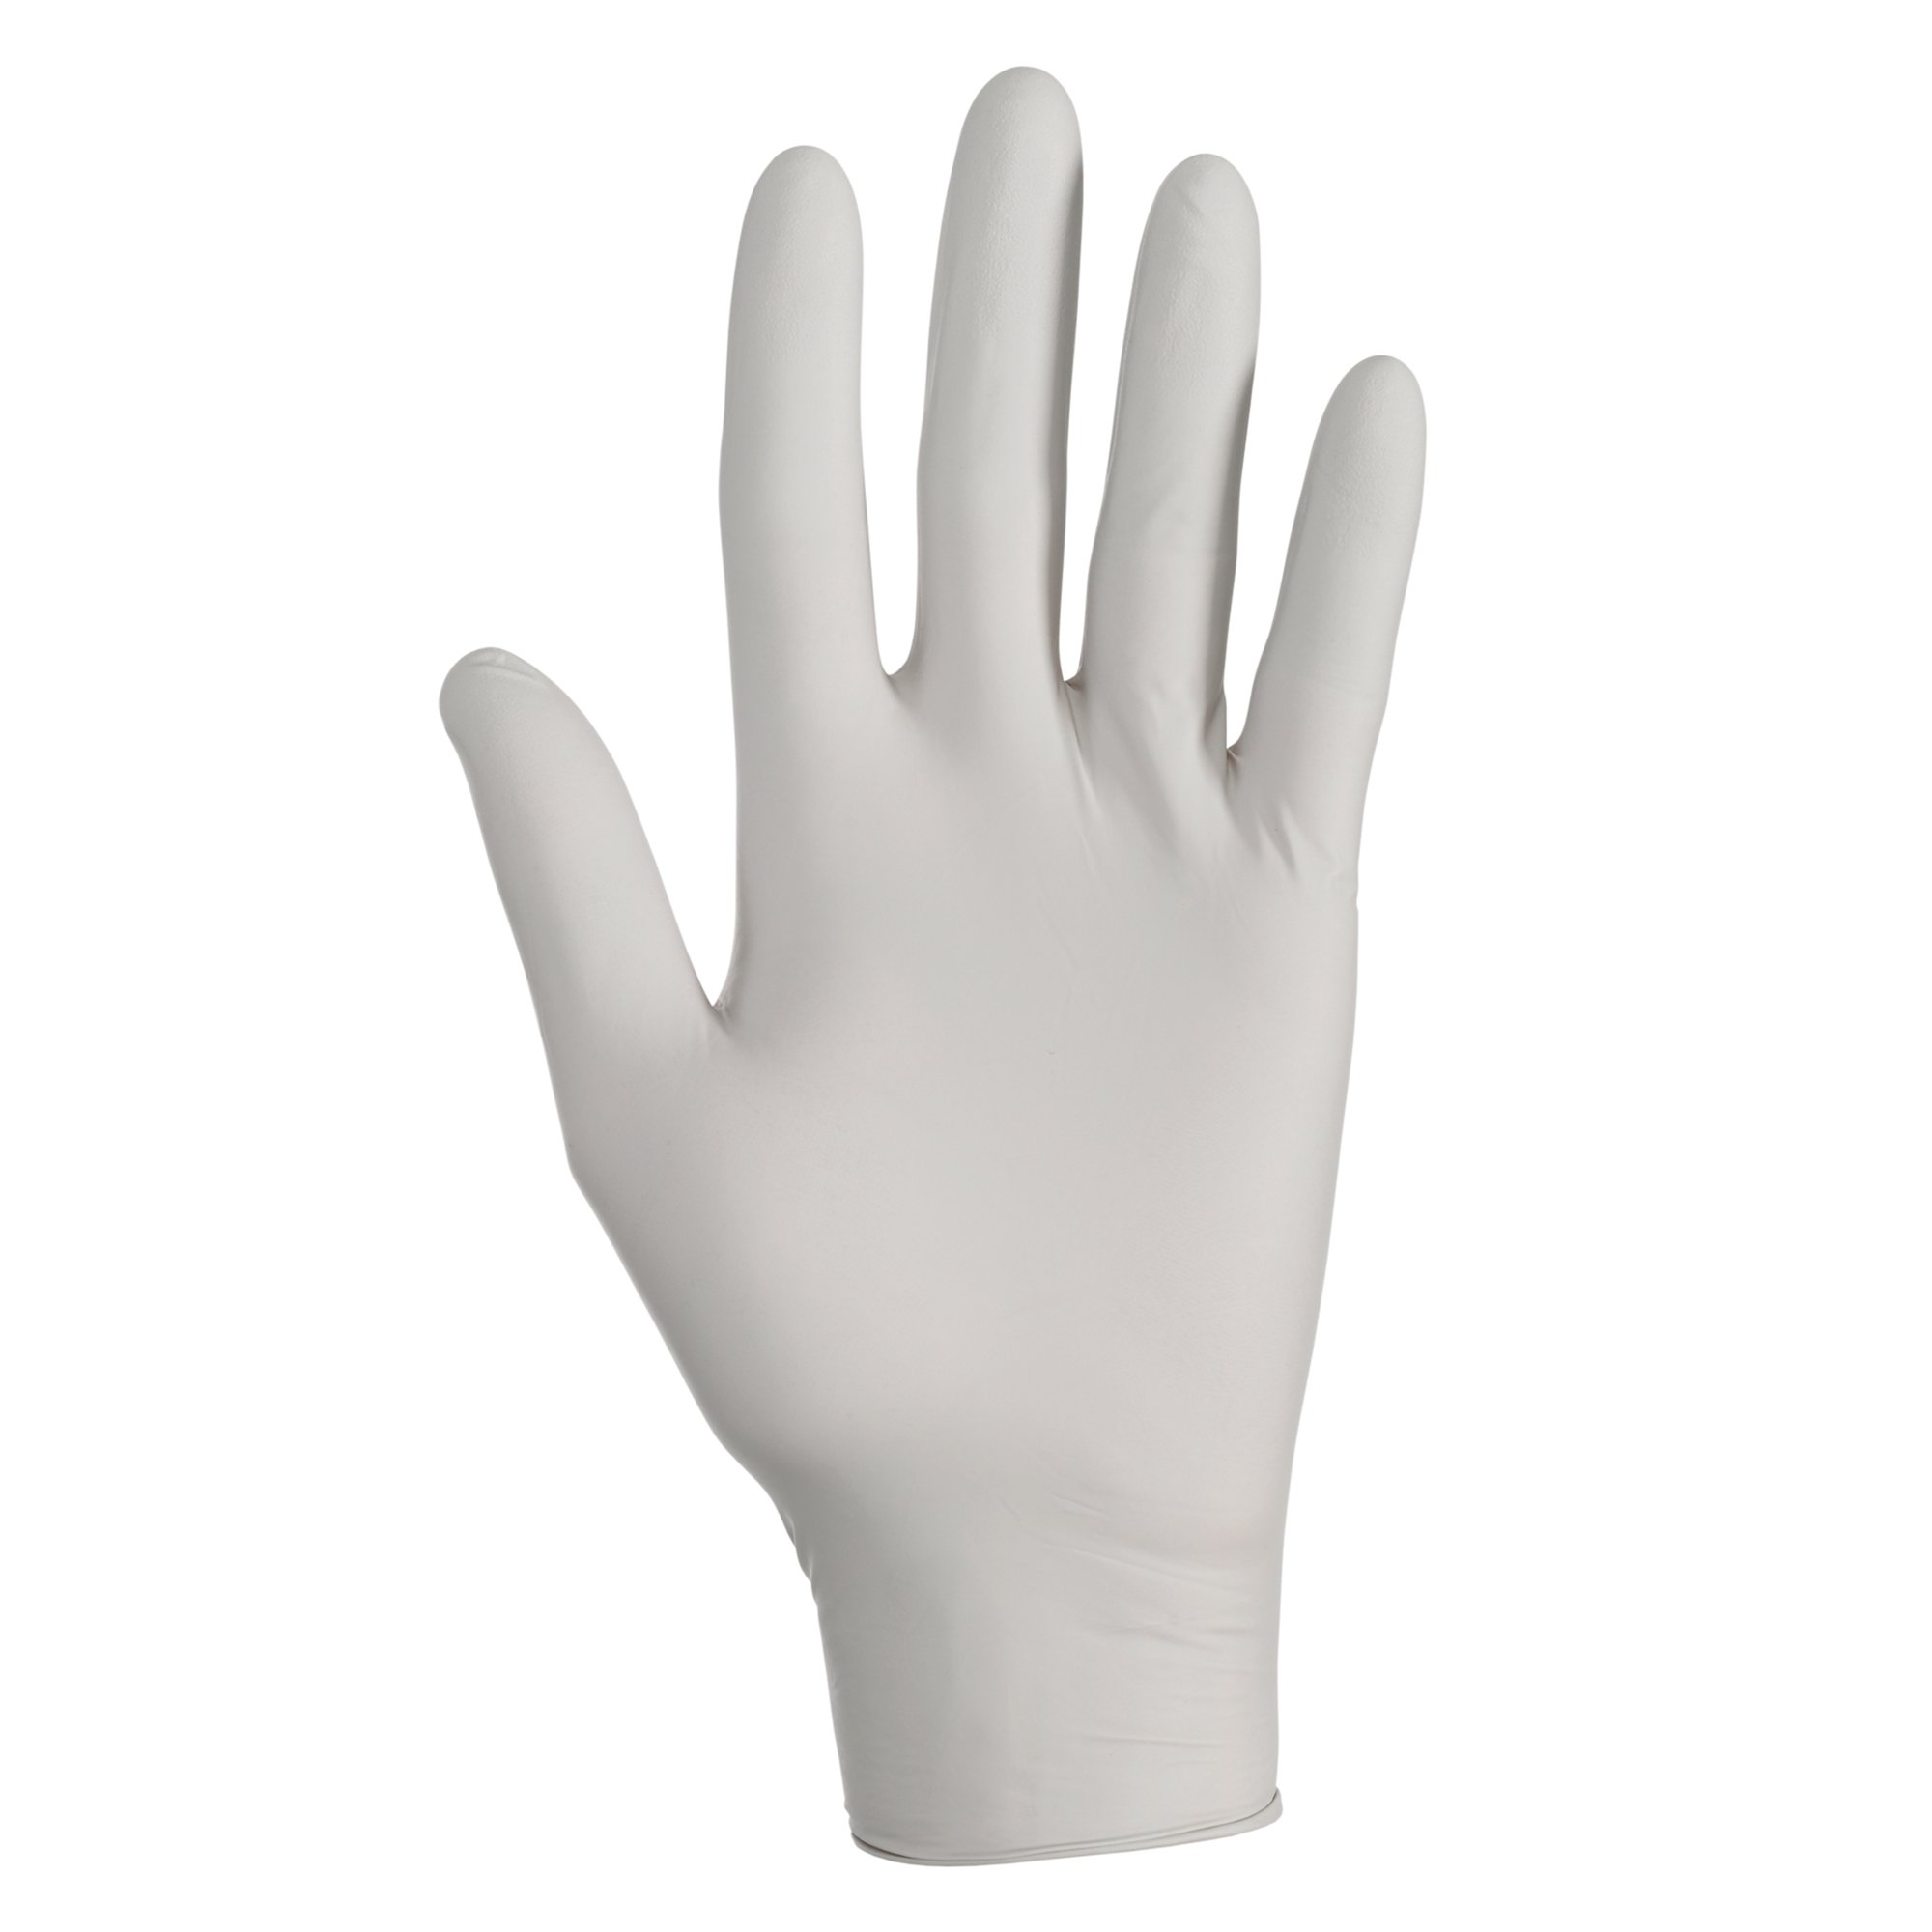 Kleenguard G10 Grey Nitrile Gloves (97821), Small, Powder-Free , Ambidextrous , Thin Mil, 50% More / Case, 150 Gloves / Box, 10 Boxes / Case